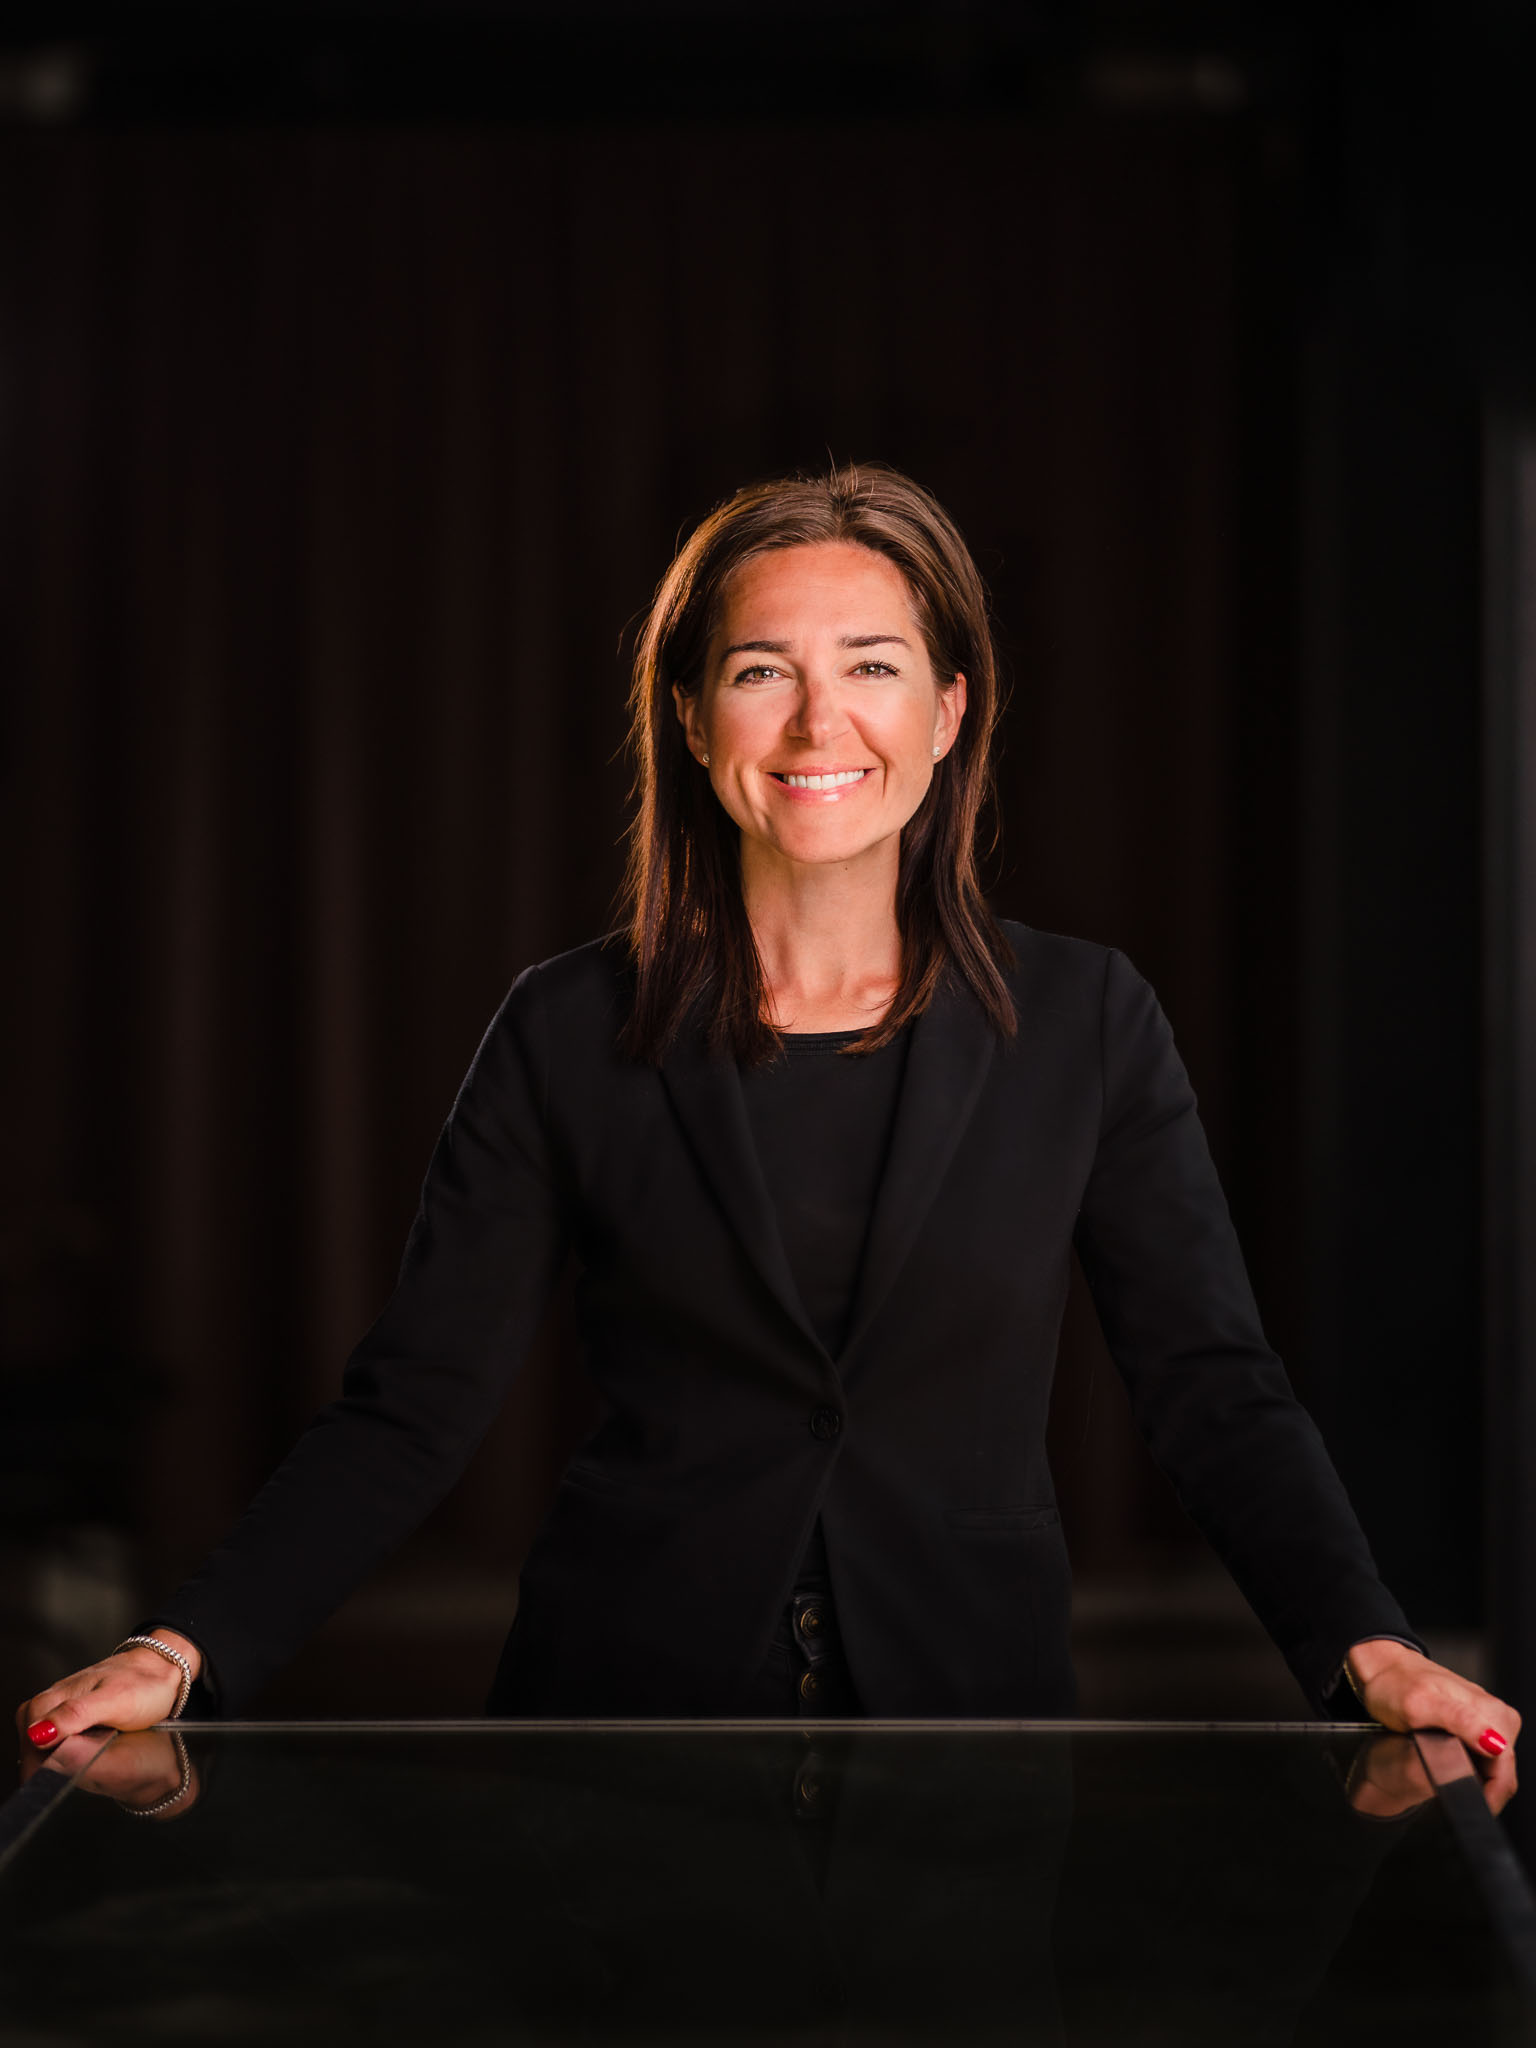 Marica Nivelt, Hotel manager Scandic Grand Central - Business portrait, Stockholm, Sweden